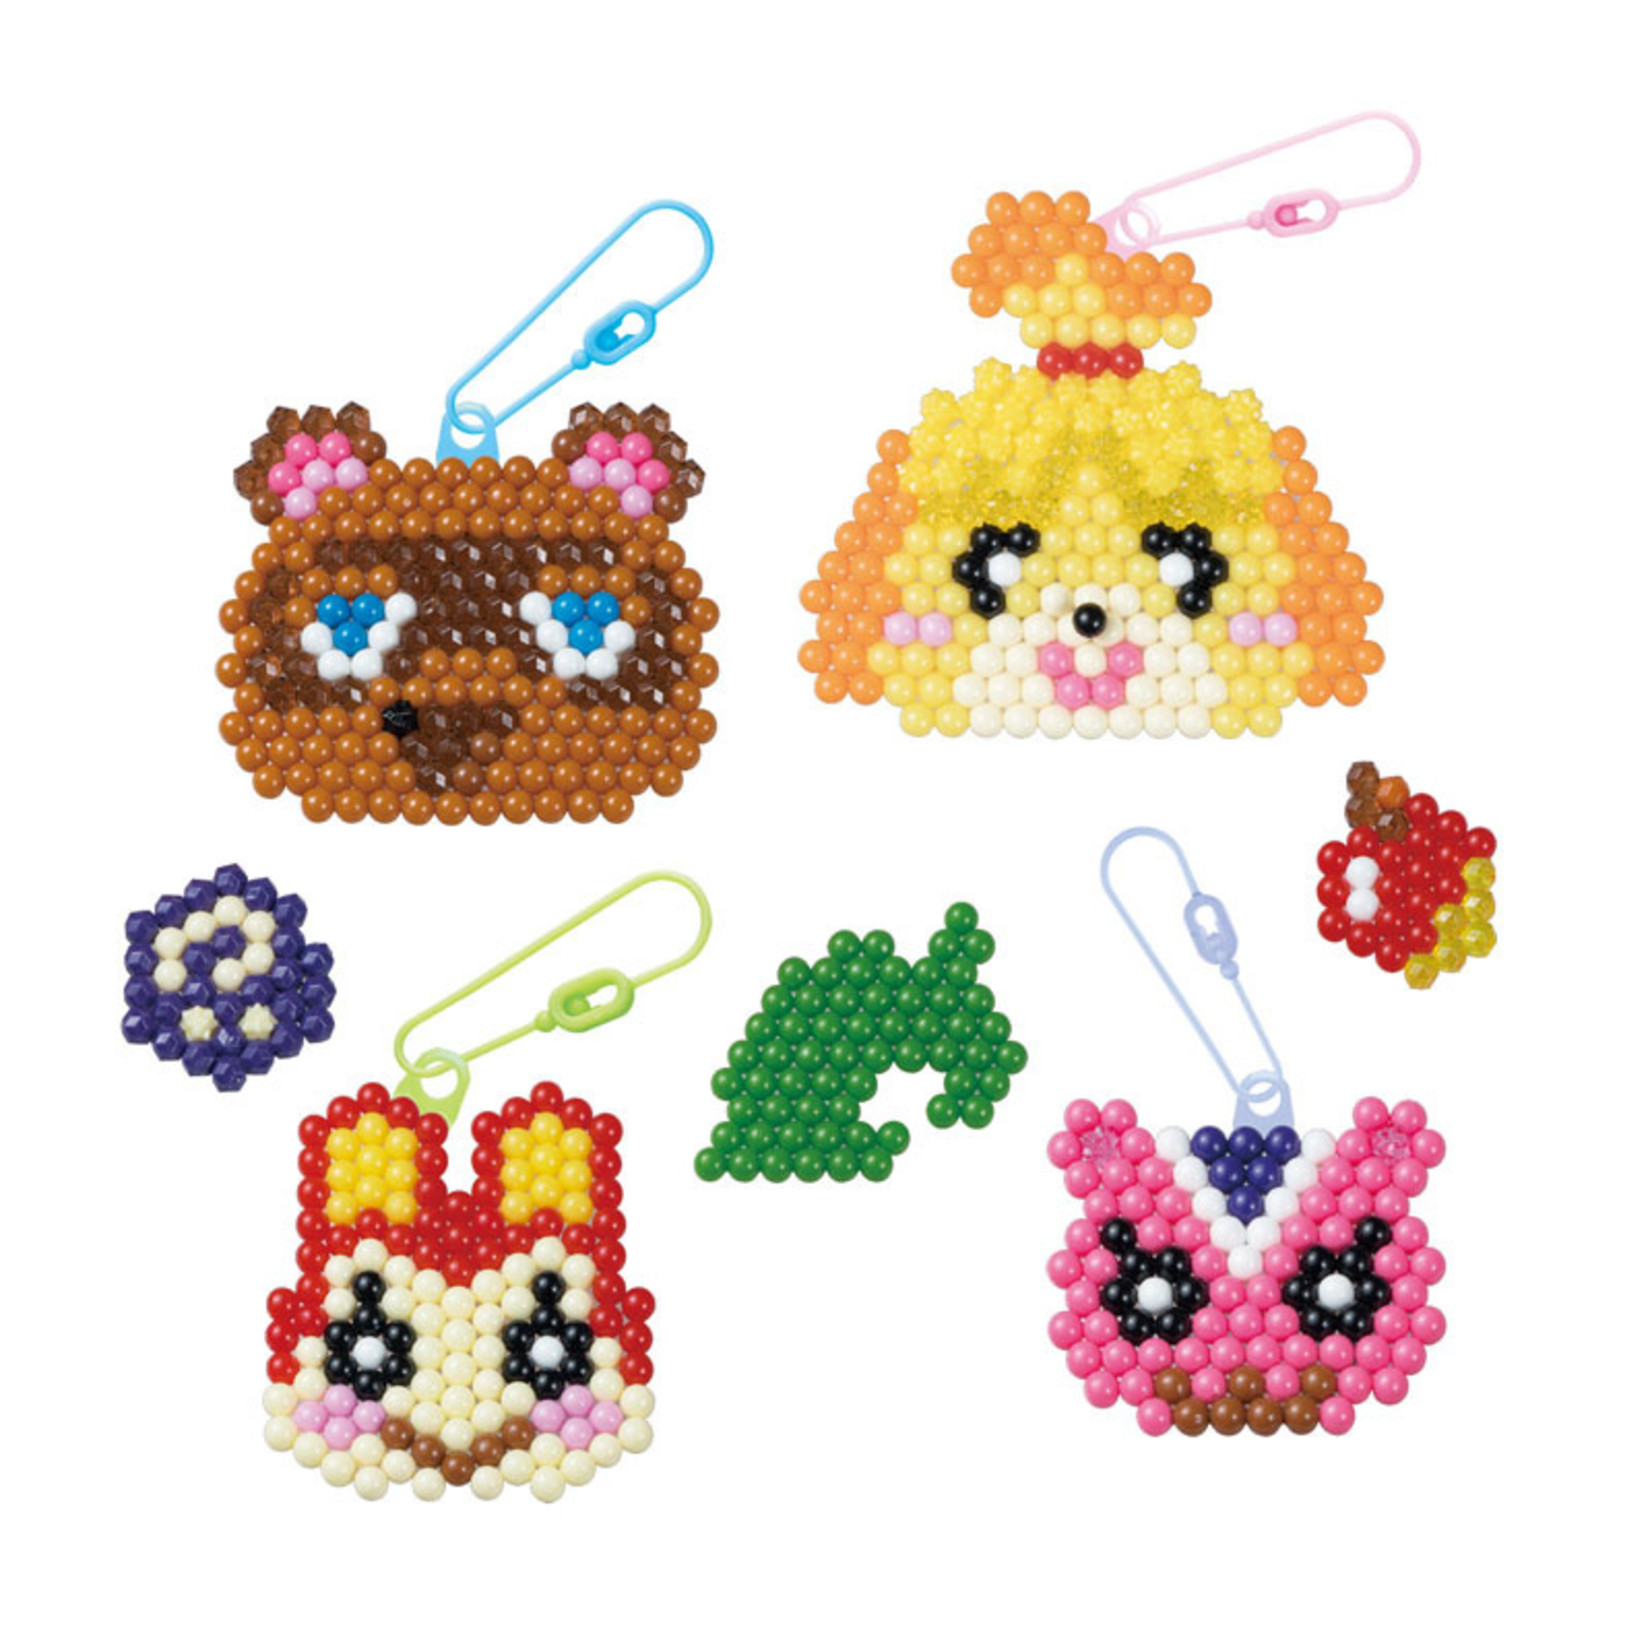 Aquabbeads Animal Crossing: New Horizons Character Set